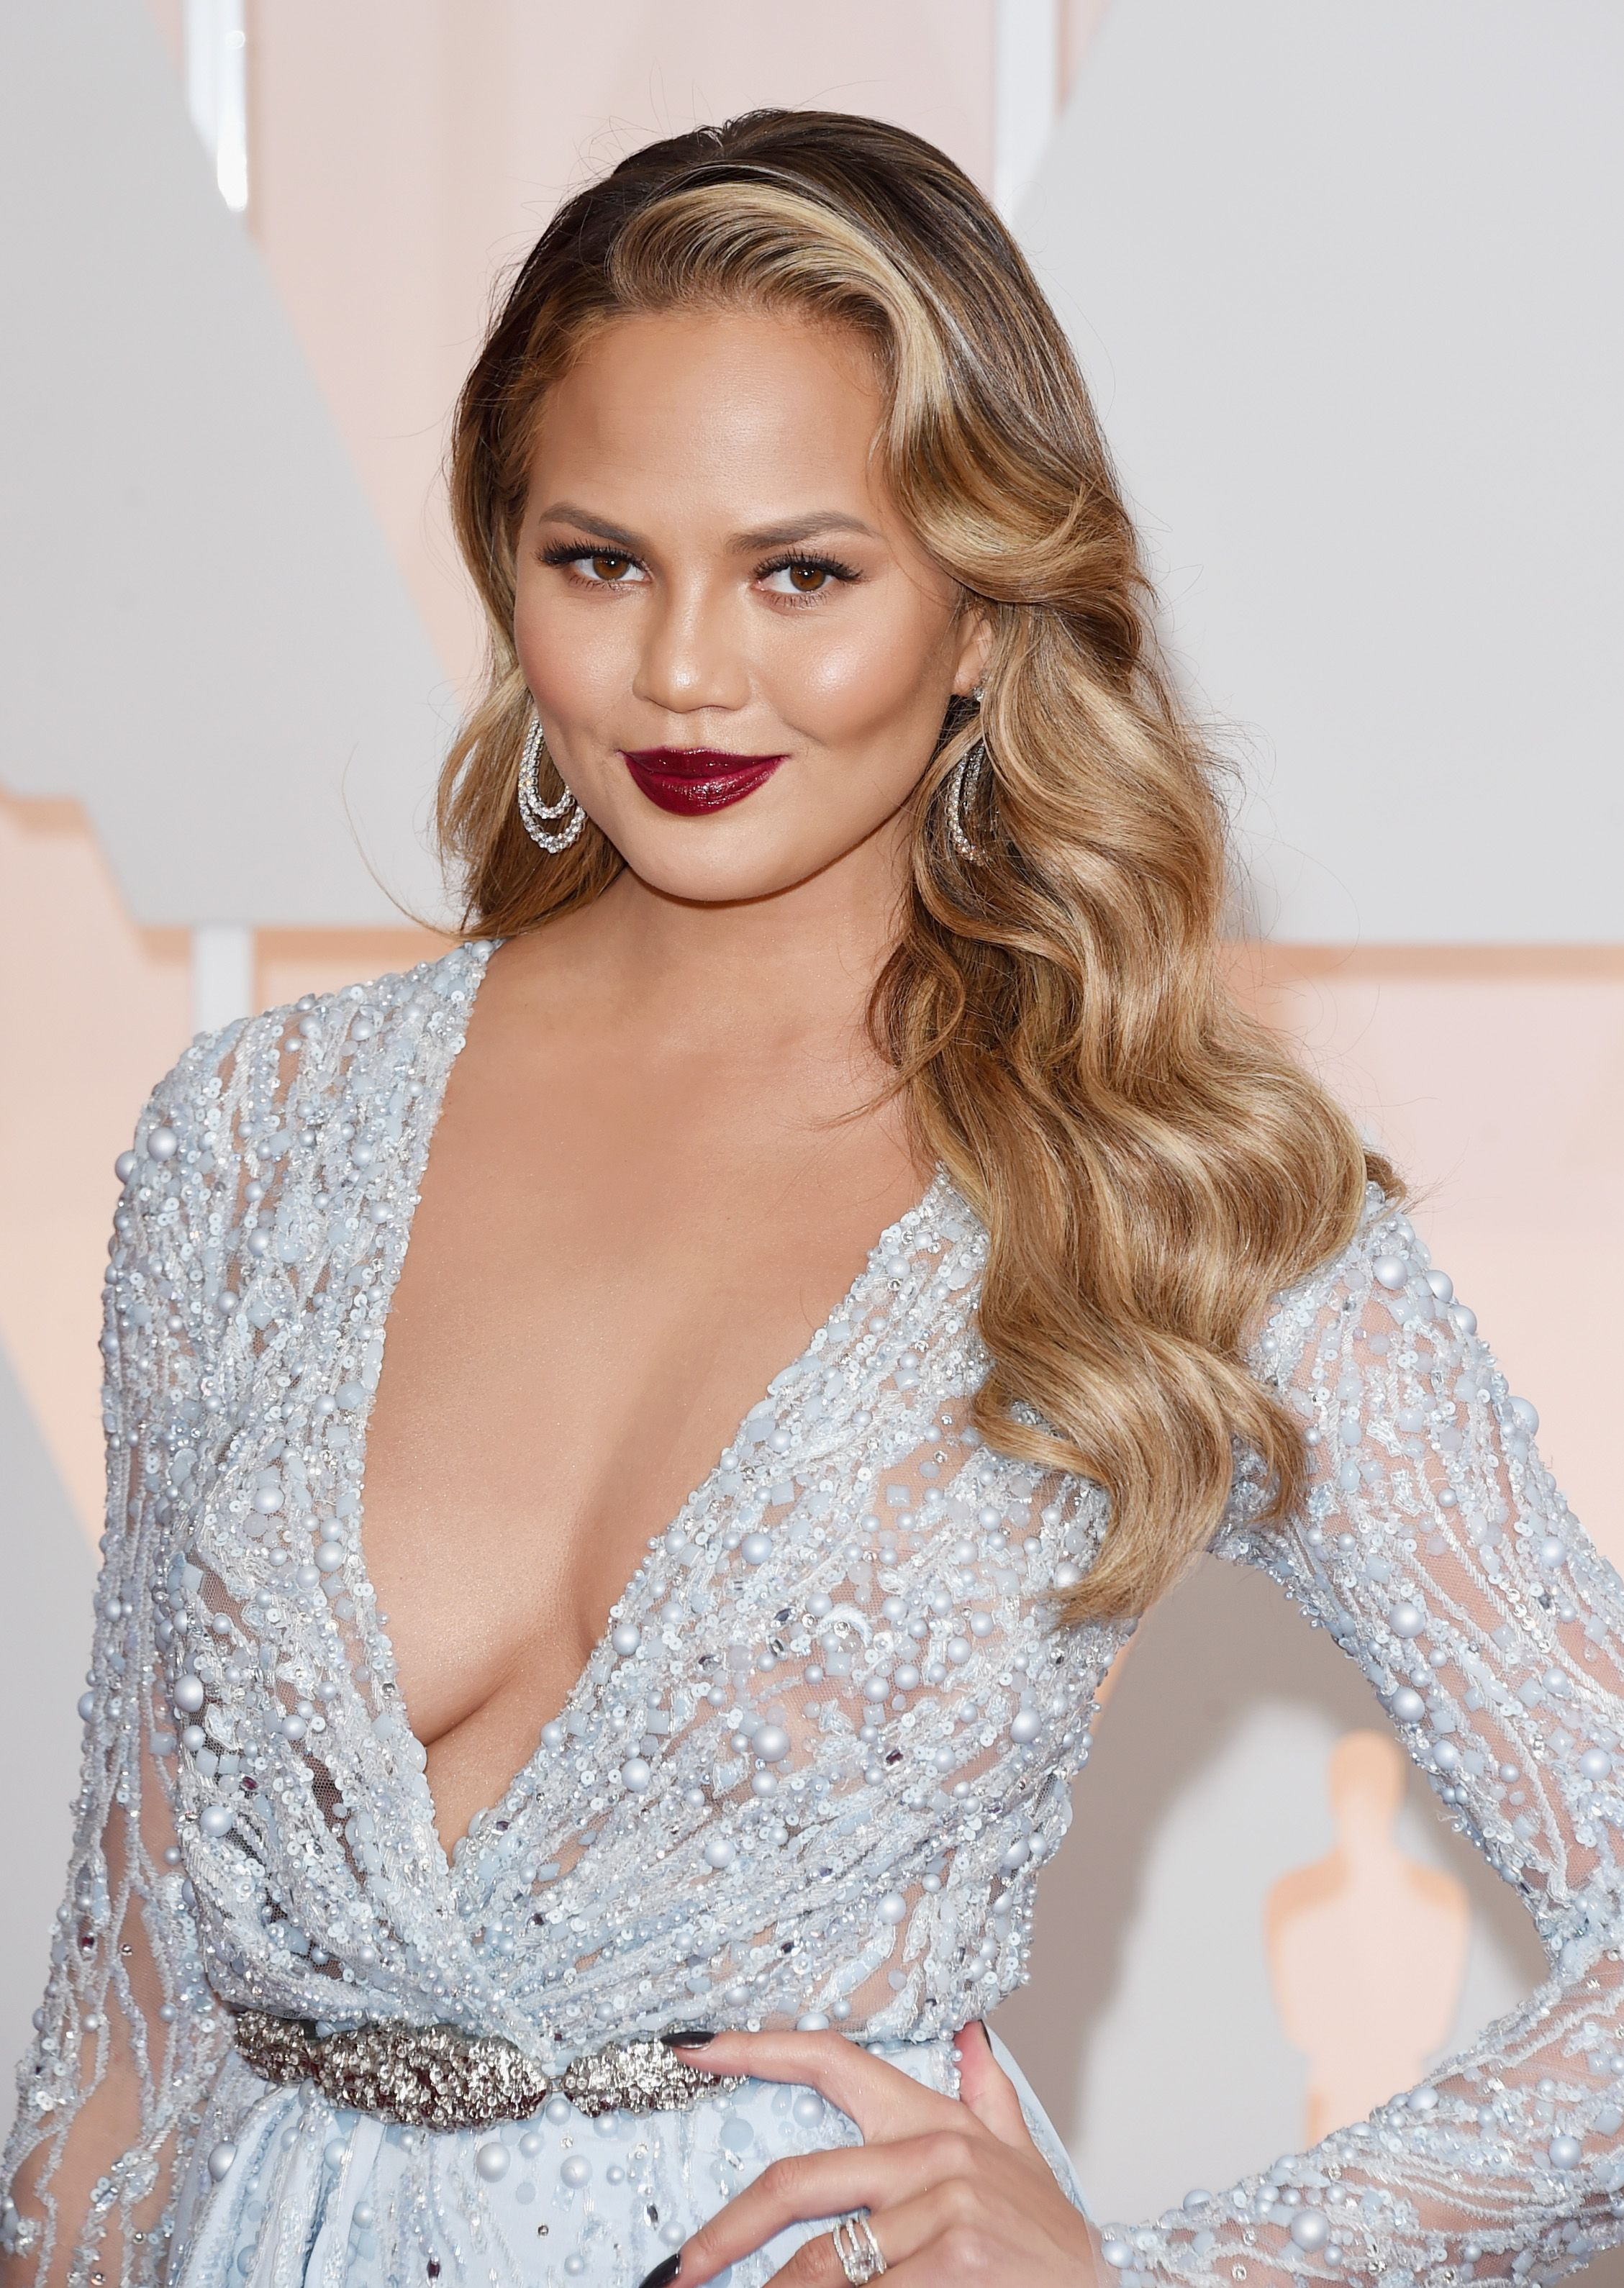 Chrissy Teigen Asked People to Photoshop Her Onto Magazine Covers and Damn, Did They Deliver